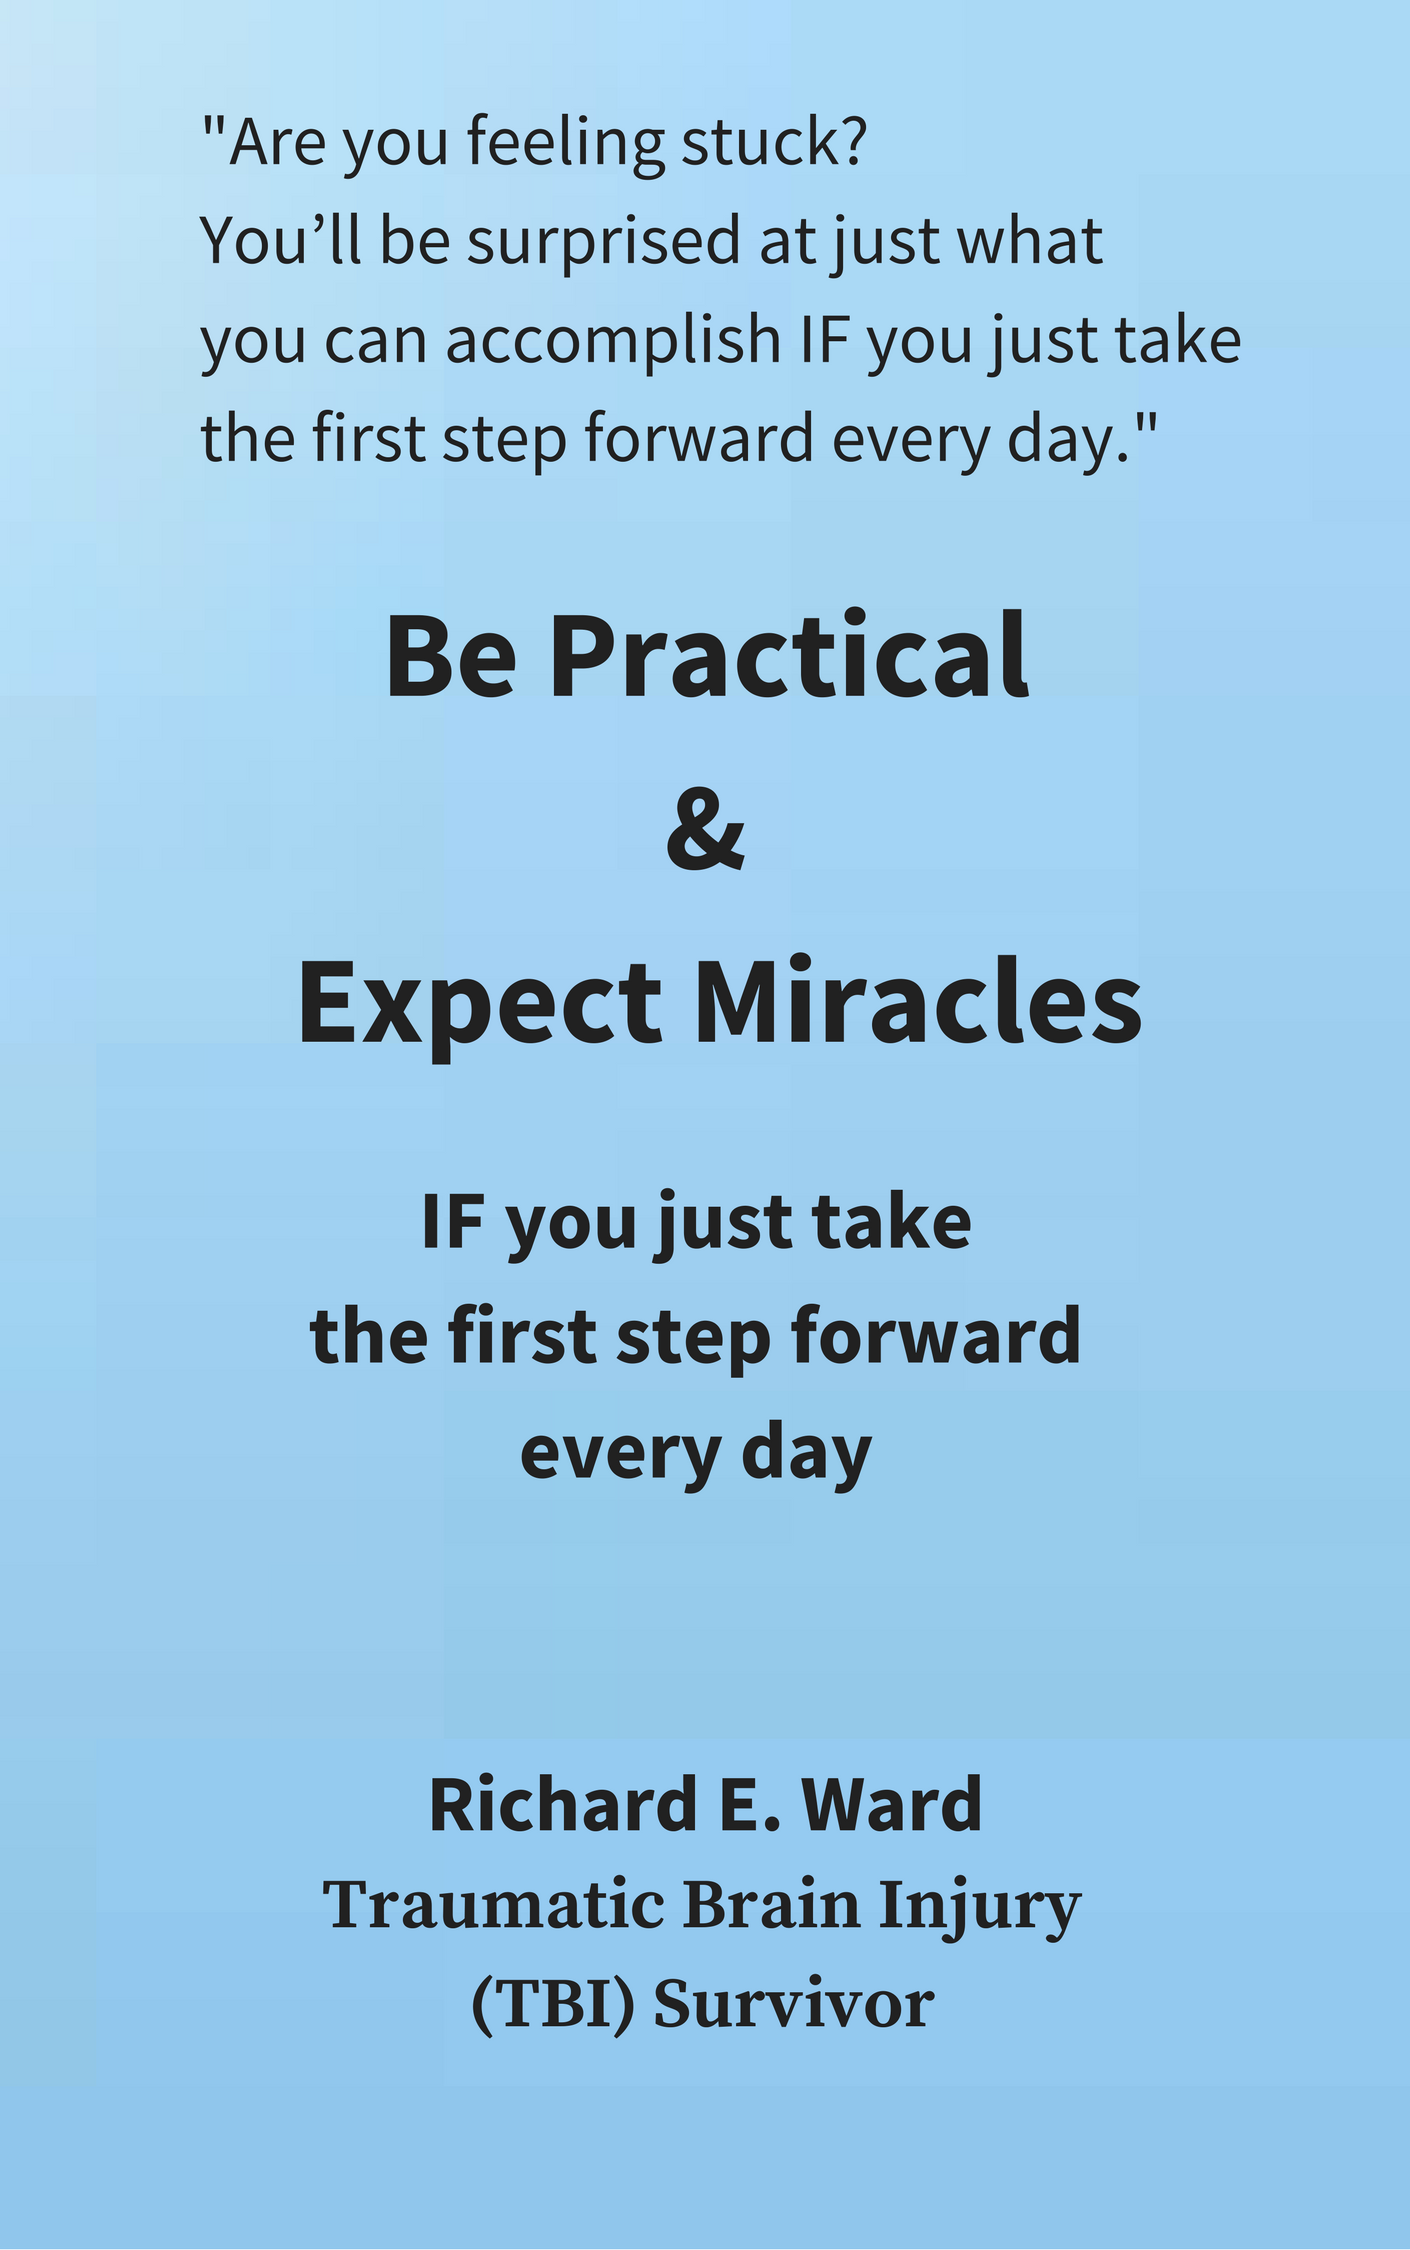 Be Practical & Expect Miracles by Richard E. Ward. Be practical and expect miracles if you juts take the first step every day.